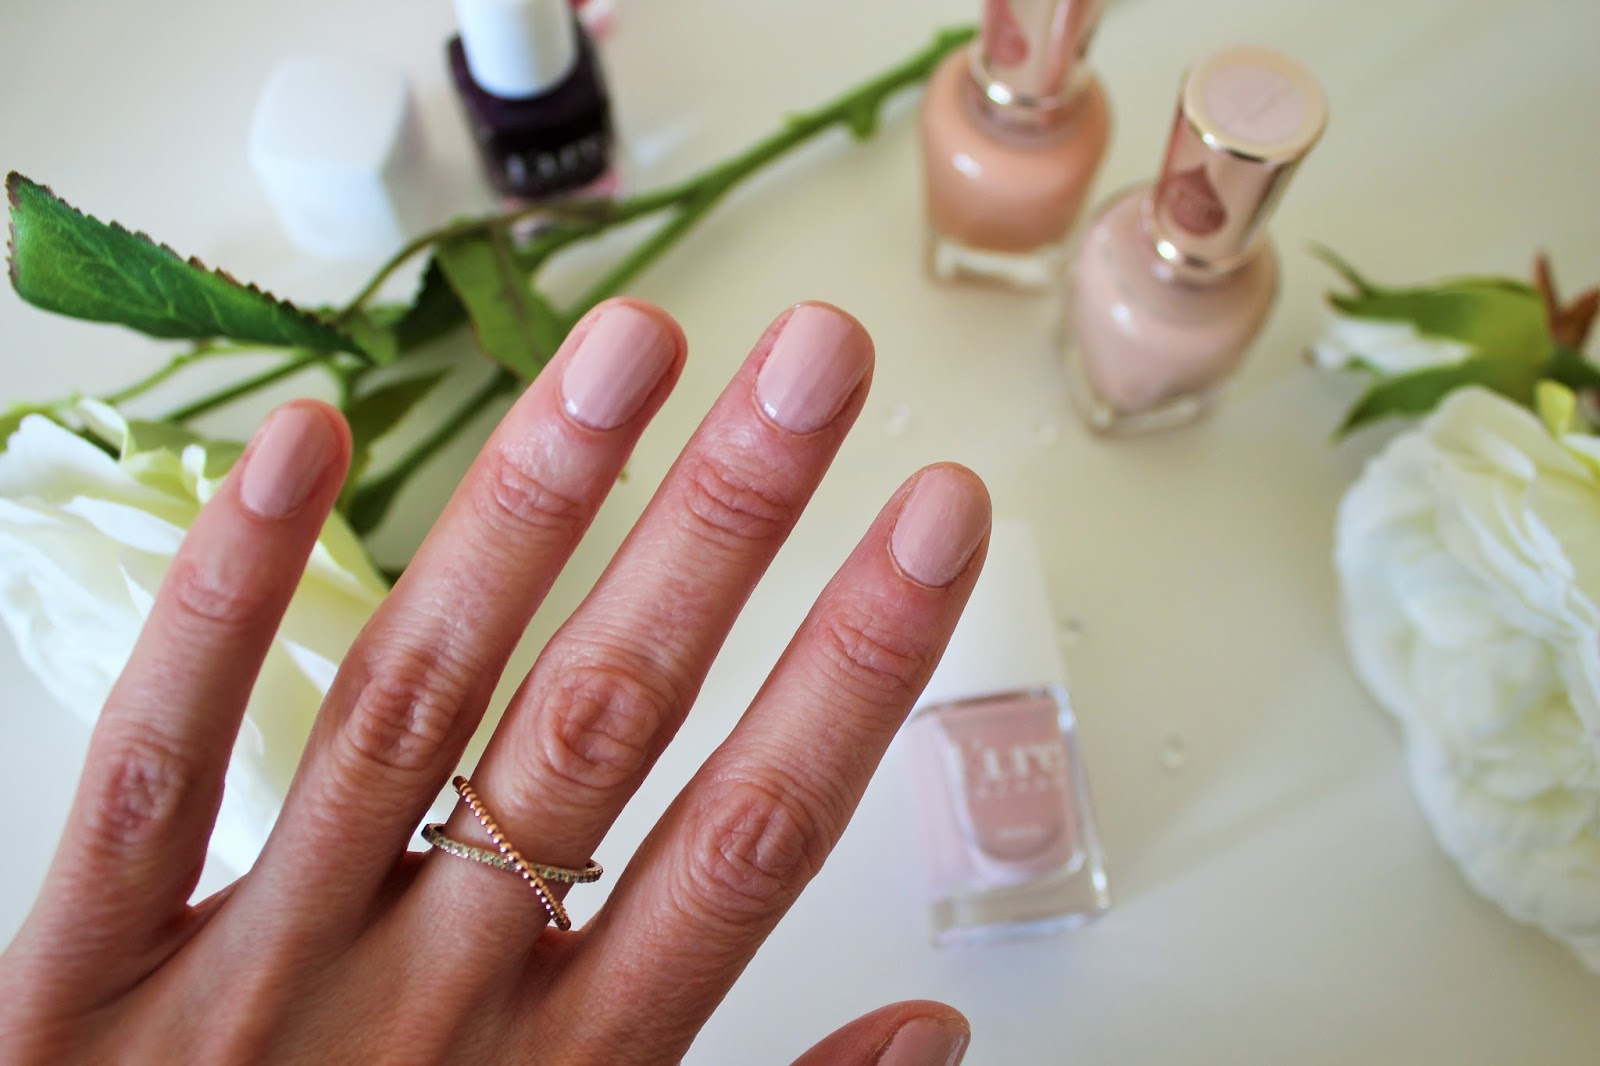 Two Nail Vanish Brands That Nourish Your Nails - 4